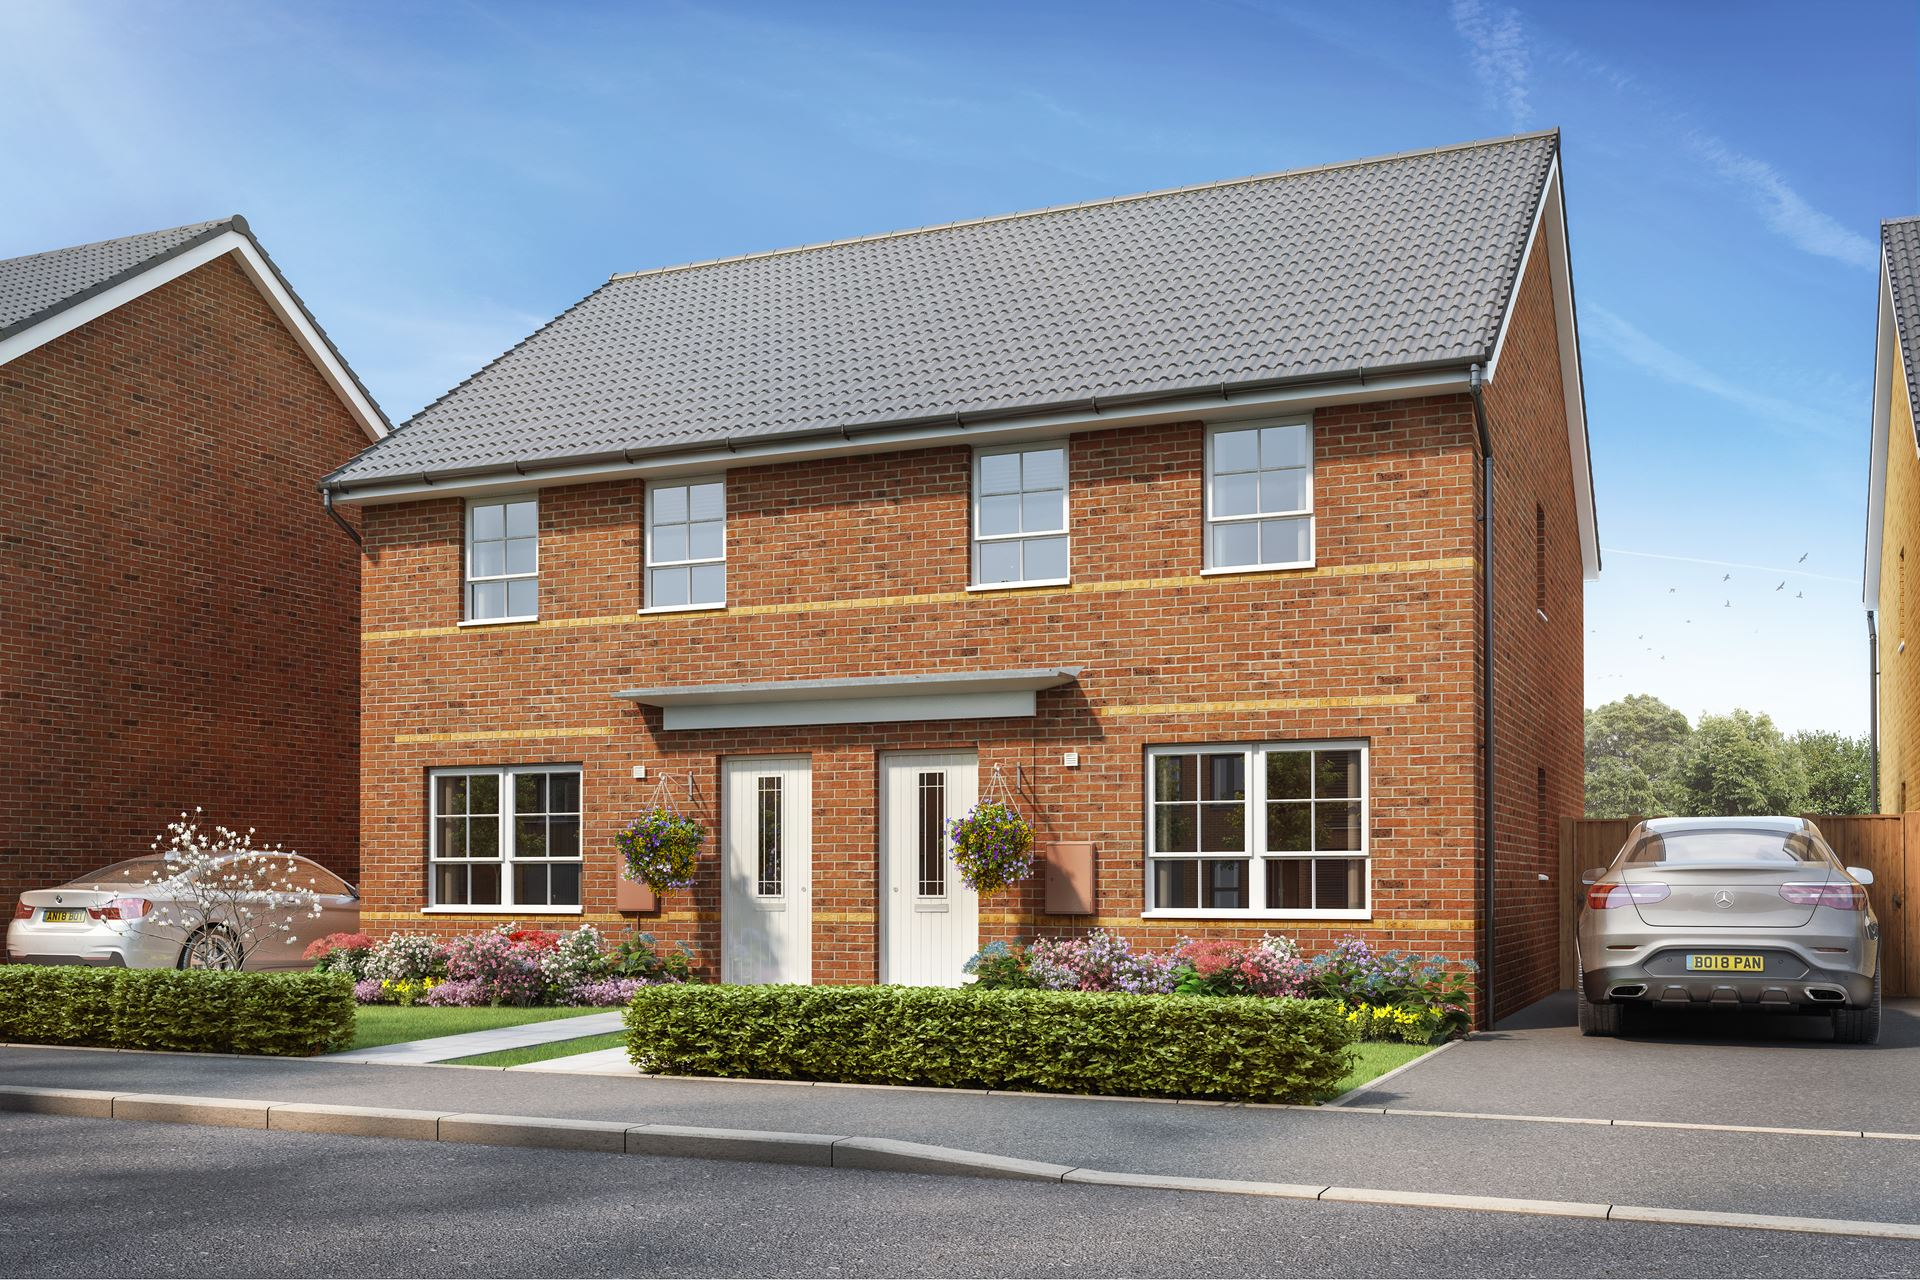 CGI. Outside view of the Maidstone. 3 bedroom semi detached home.